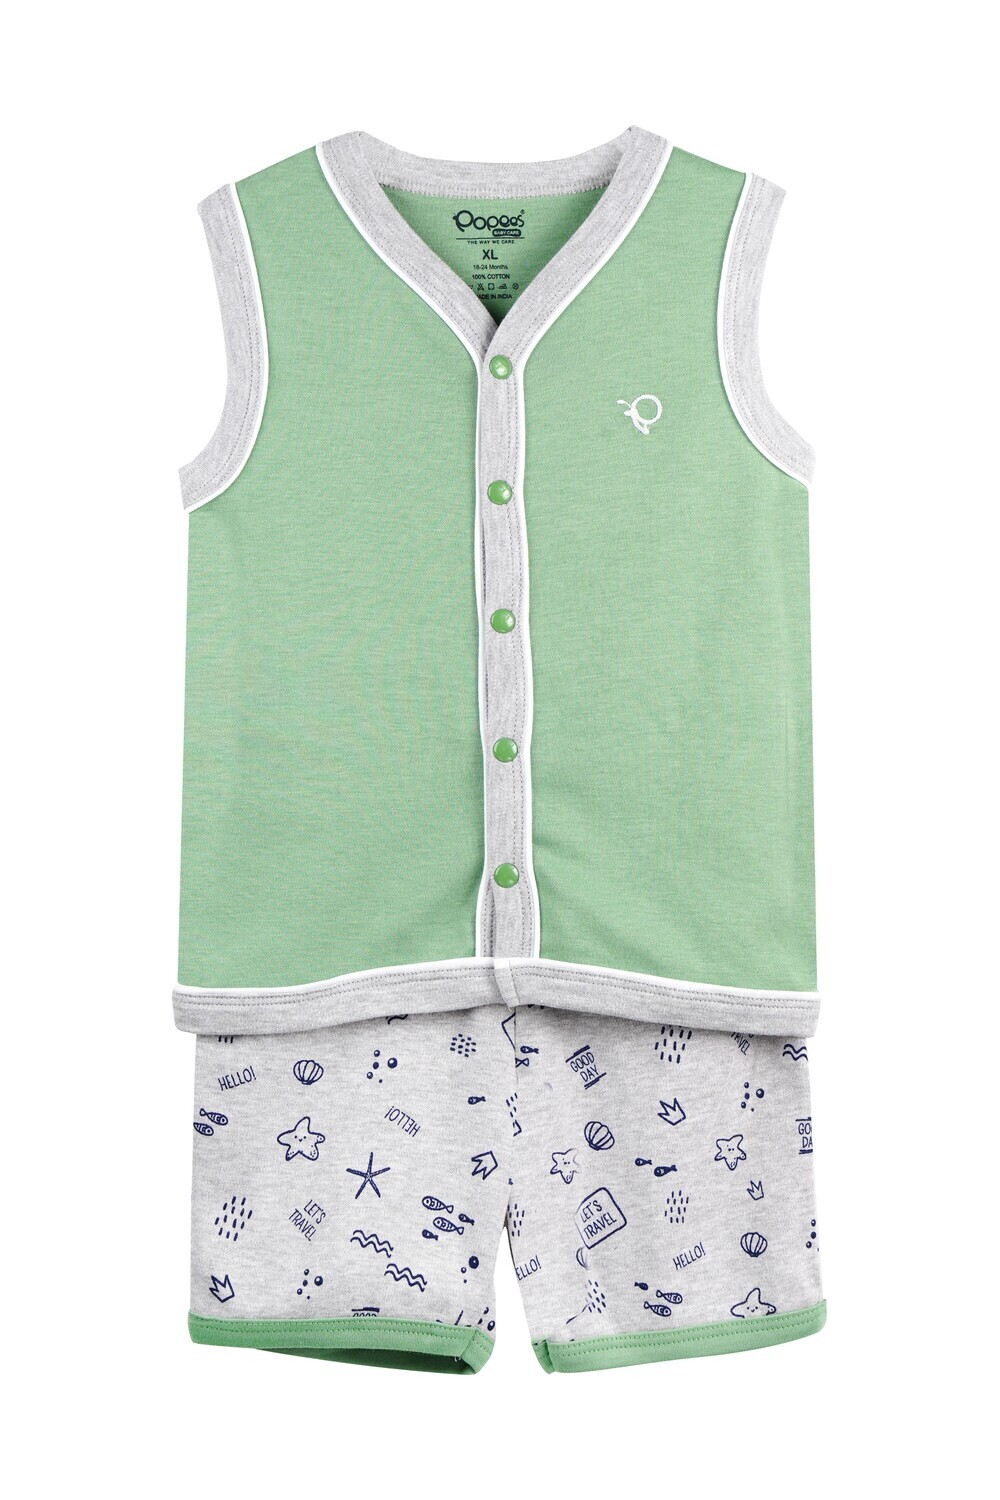 WELCH Green Eyes Top and Shorts Sleeveless for Baby Boys